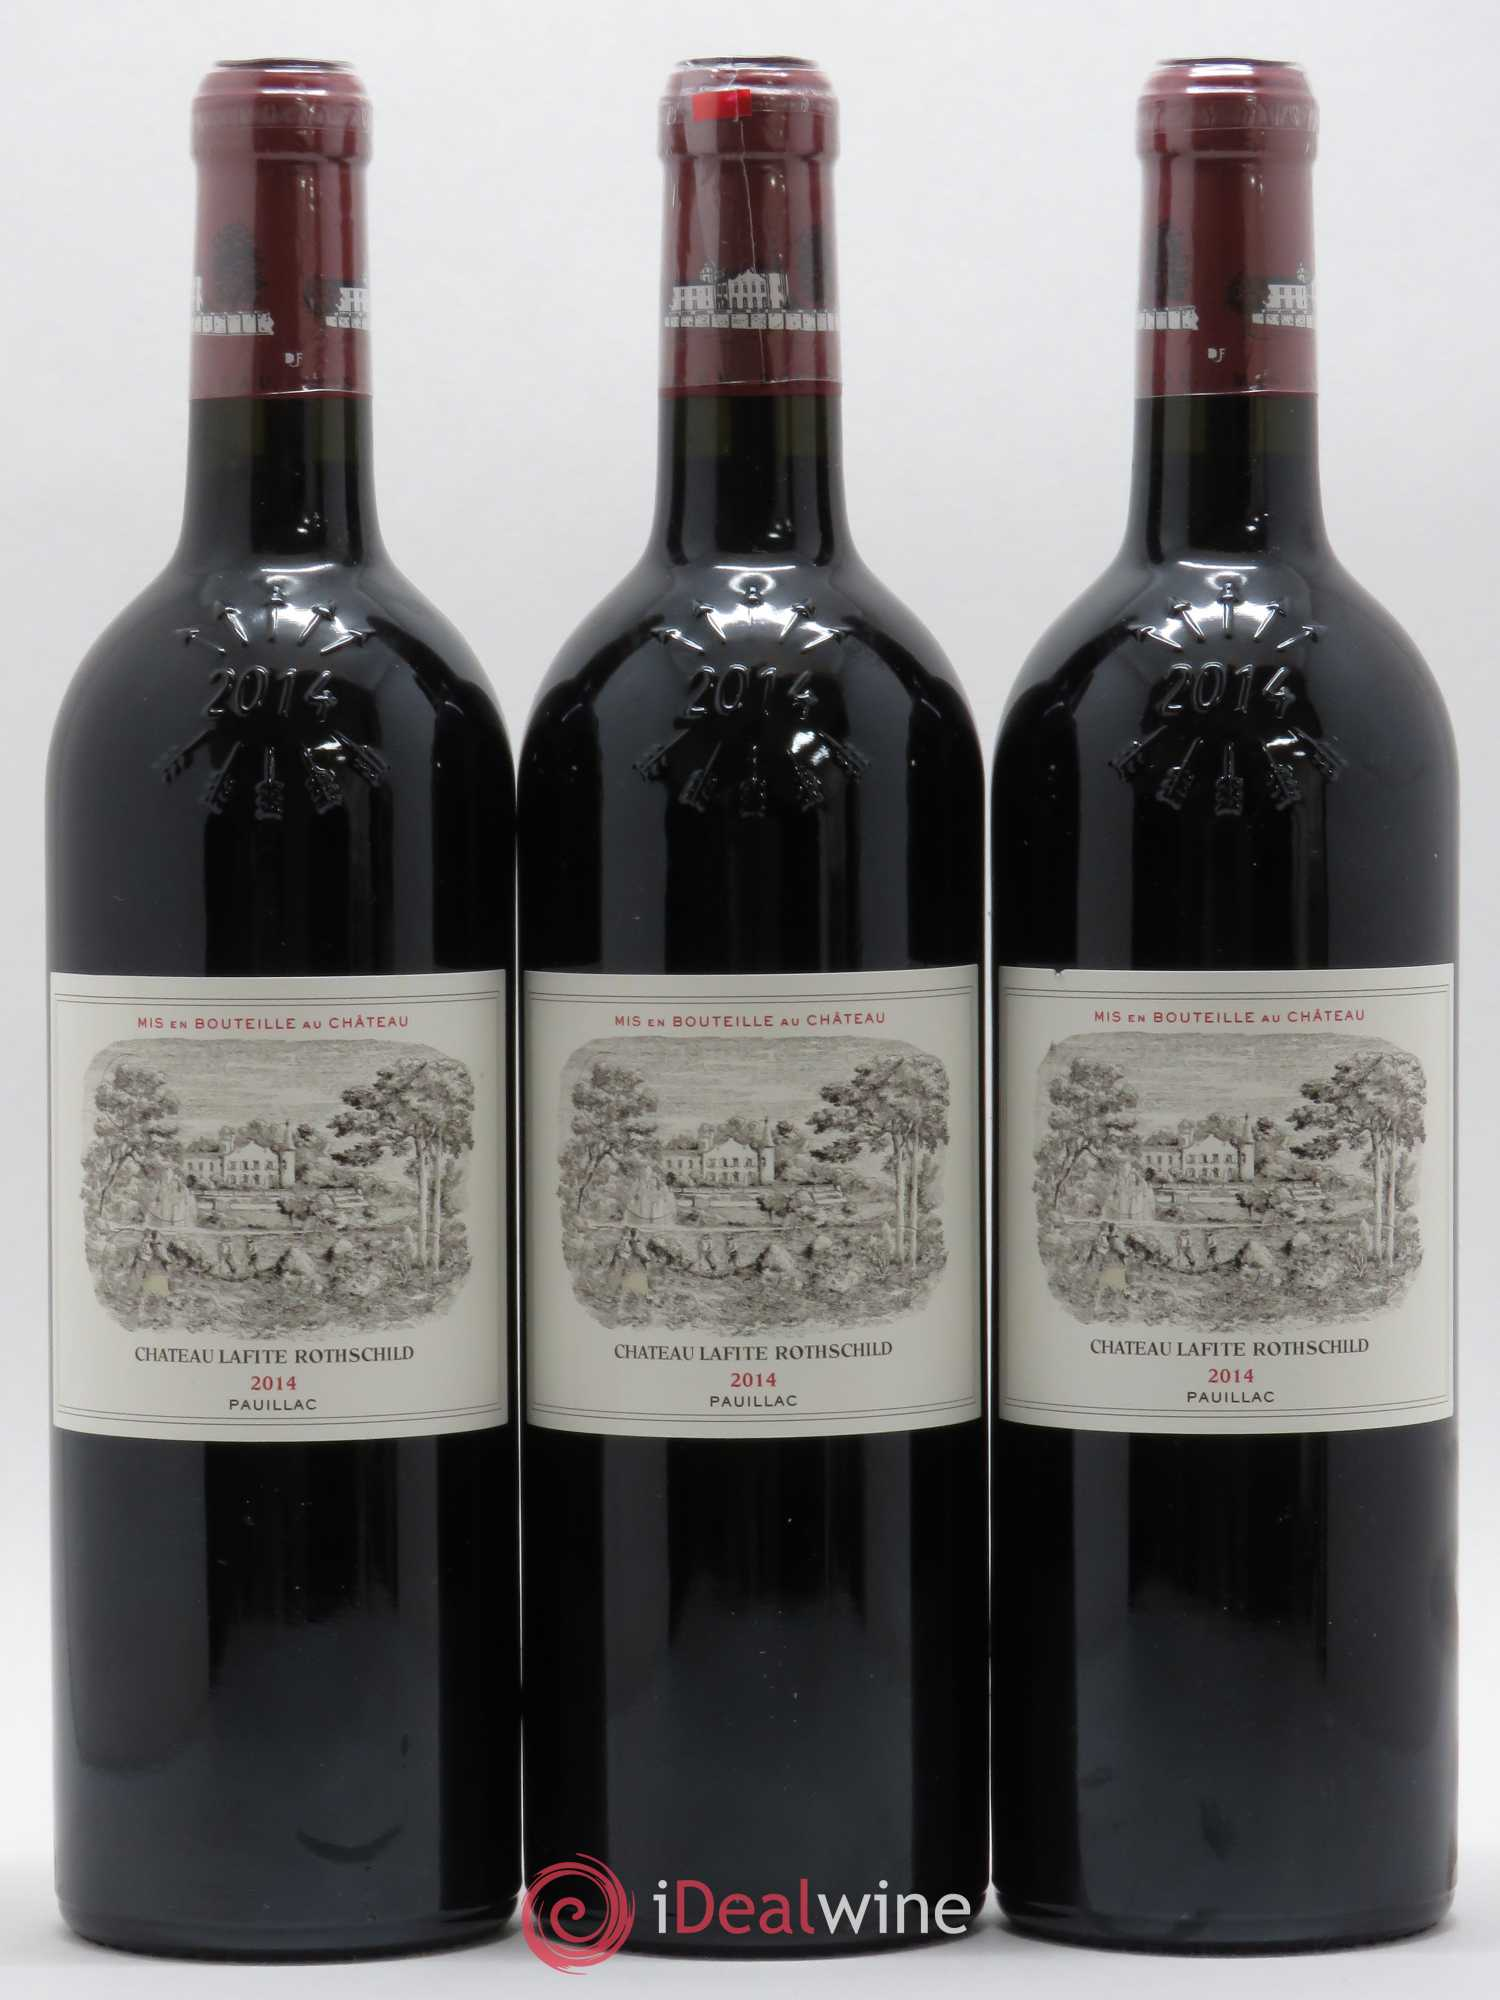 Château Lafite Rothschild 1er Grand Cru Classé  2014 - Lot of 3 Bottles